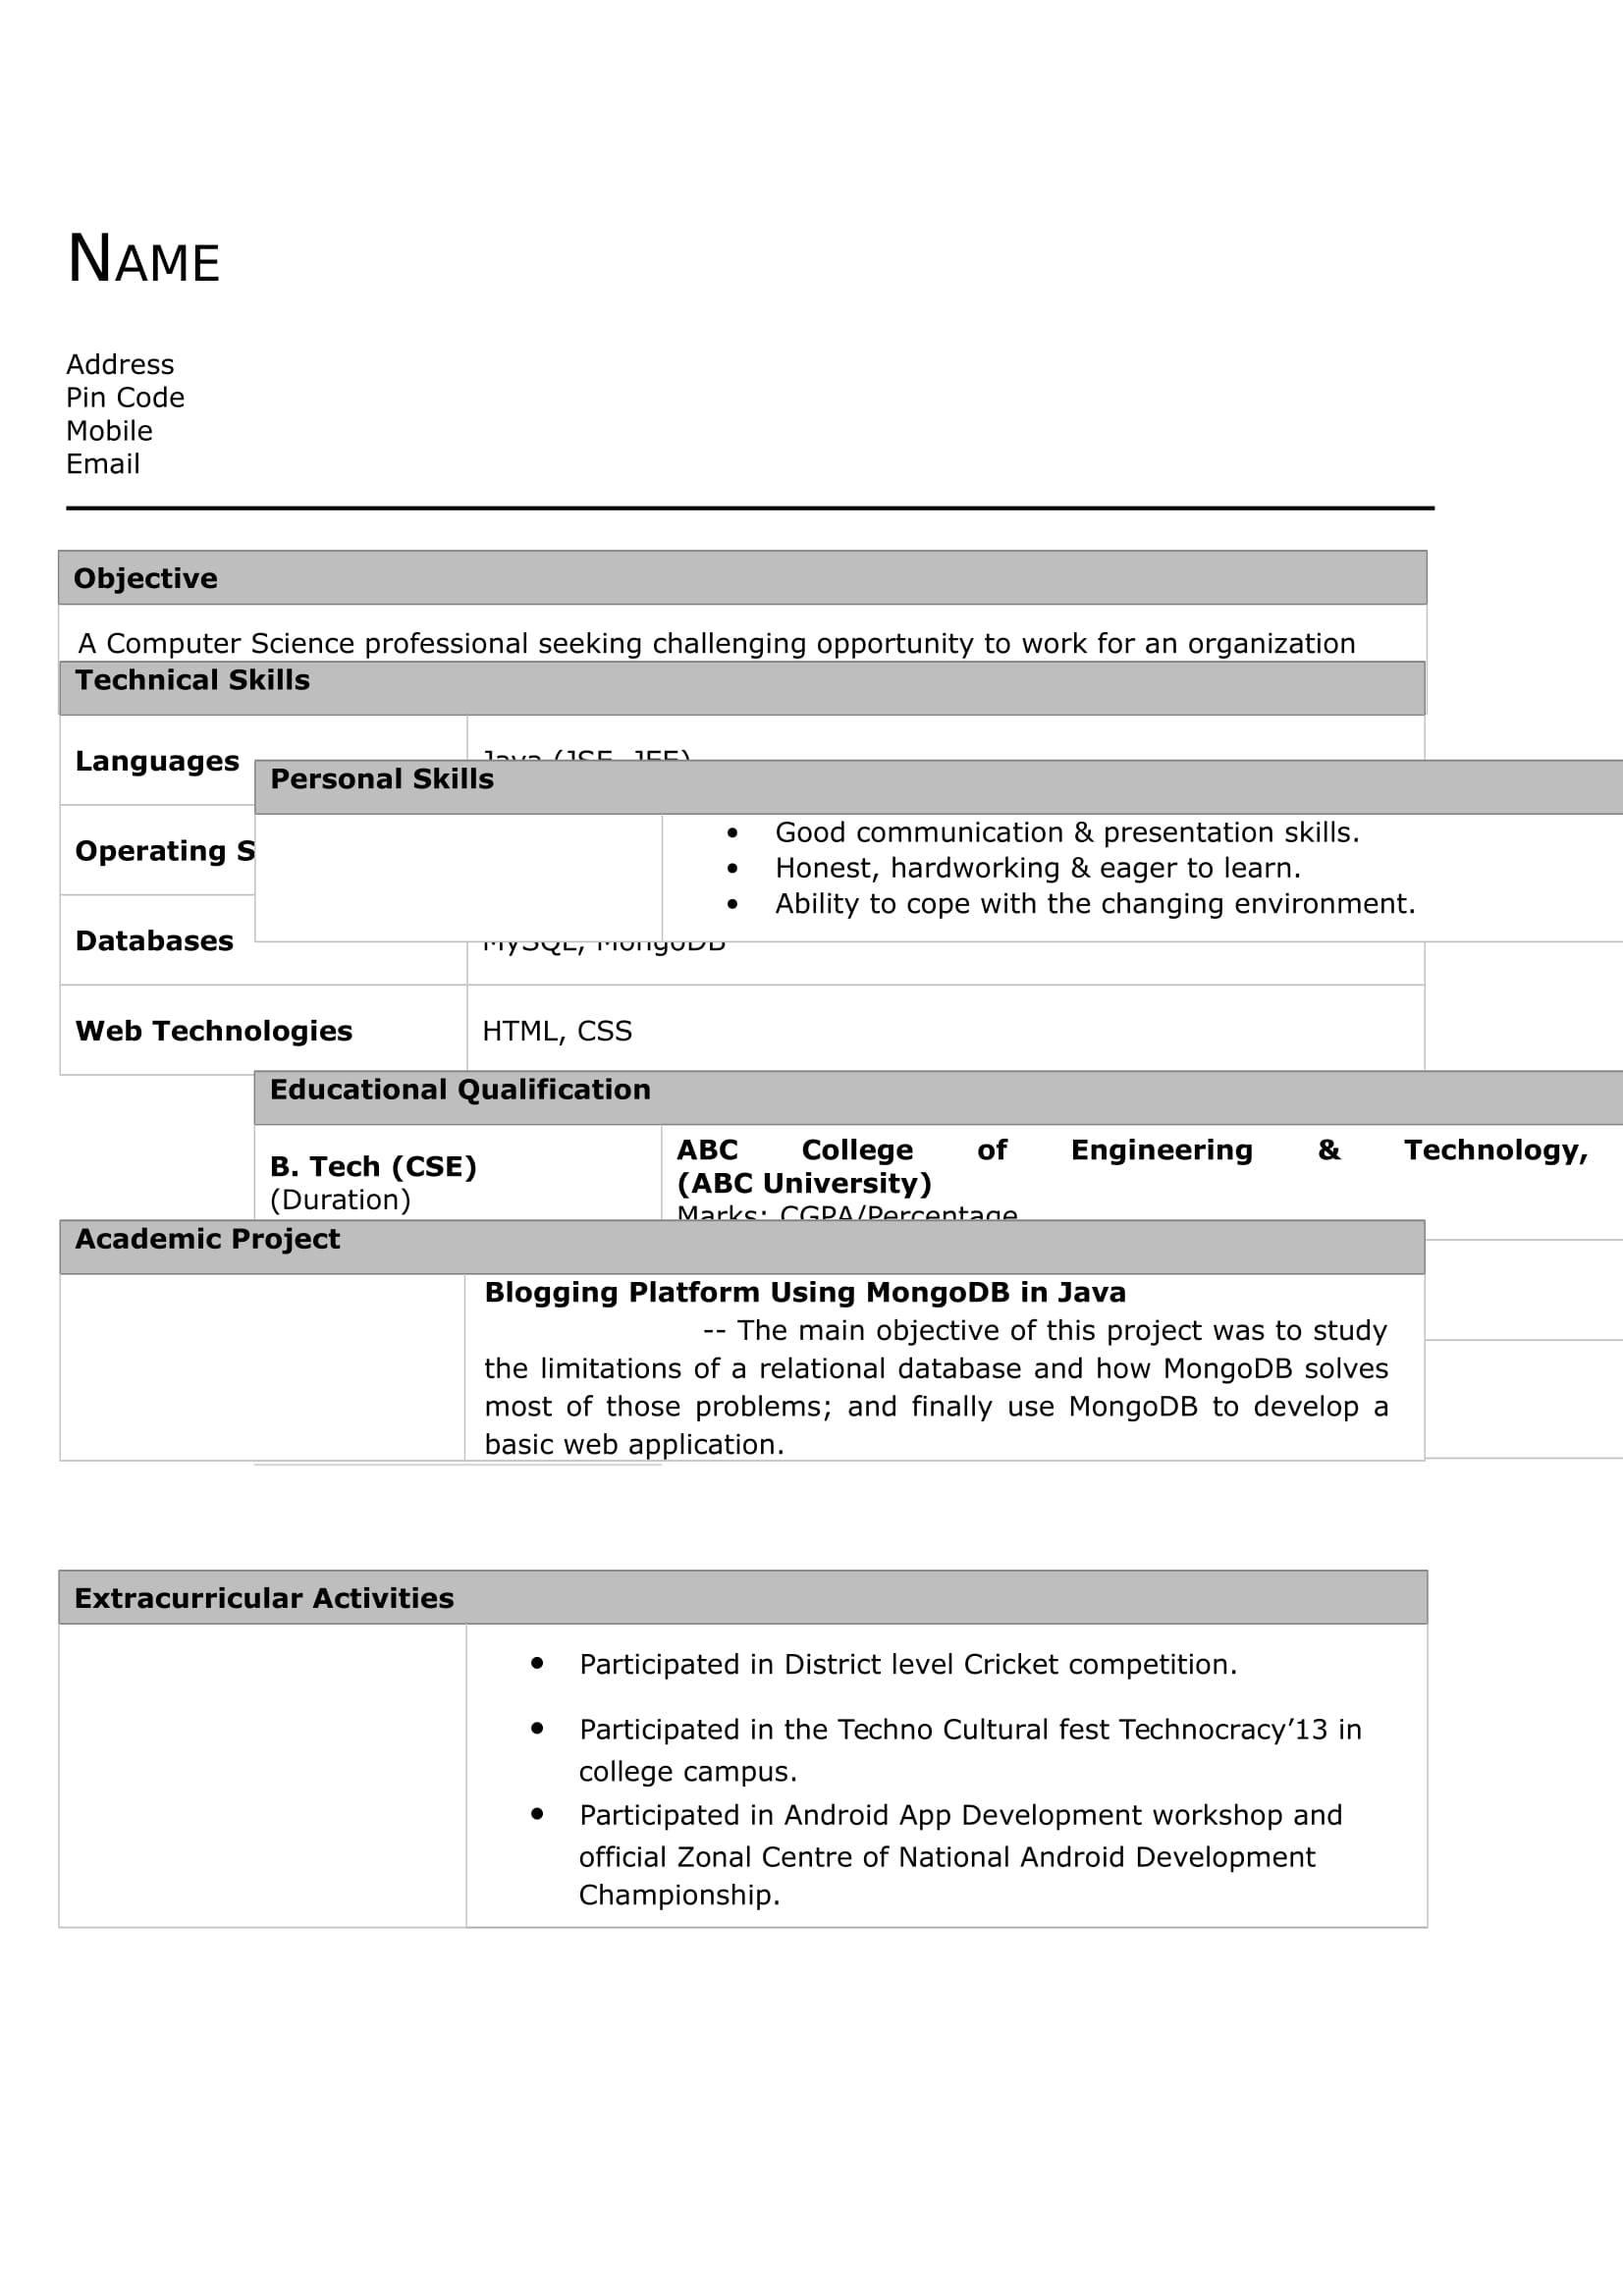 Sample Resume For Vlsi Engineer Fresher 32 43 Resume Templates For Freshers Download Free Word Format